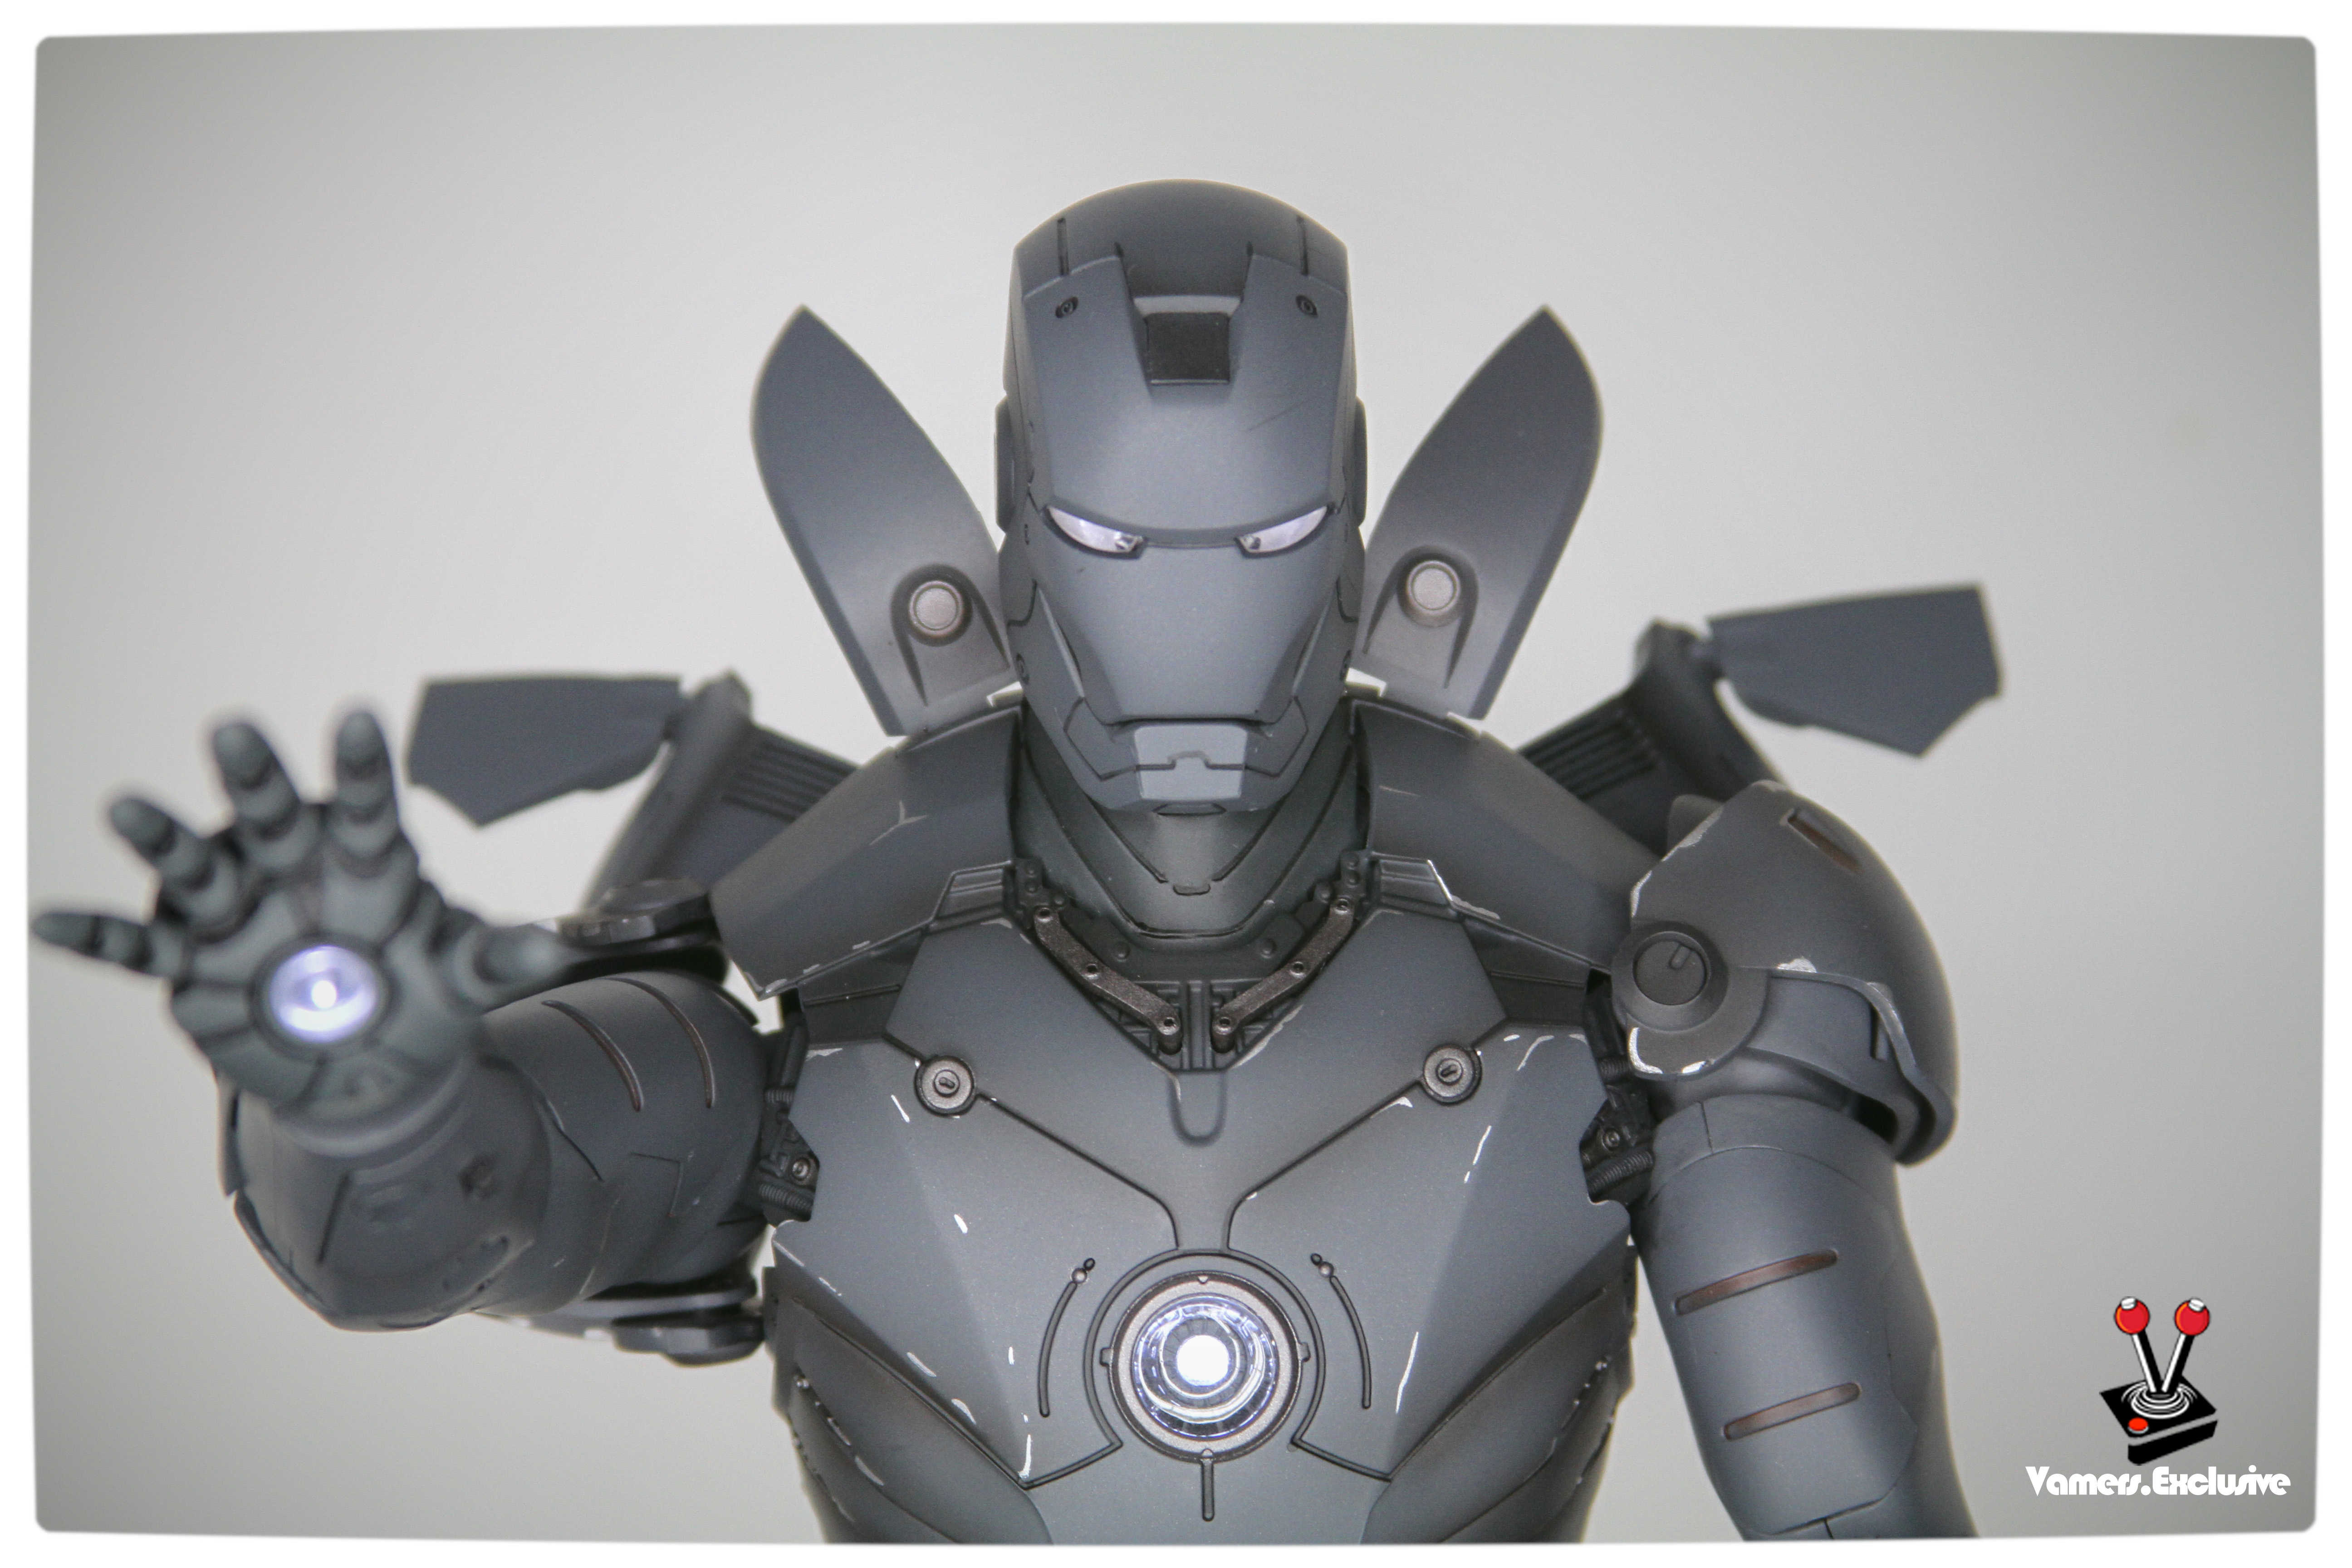 Vamers - Hot Toys - Limited Edition Collectible - Iron Man Mark III - SIlly Thing's TK Edition - MMS101 - Flaps Extended and Arc Reactor Engaged